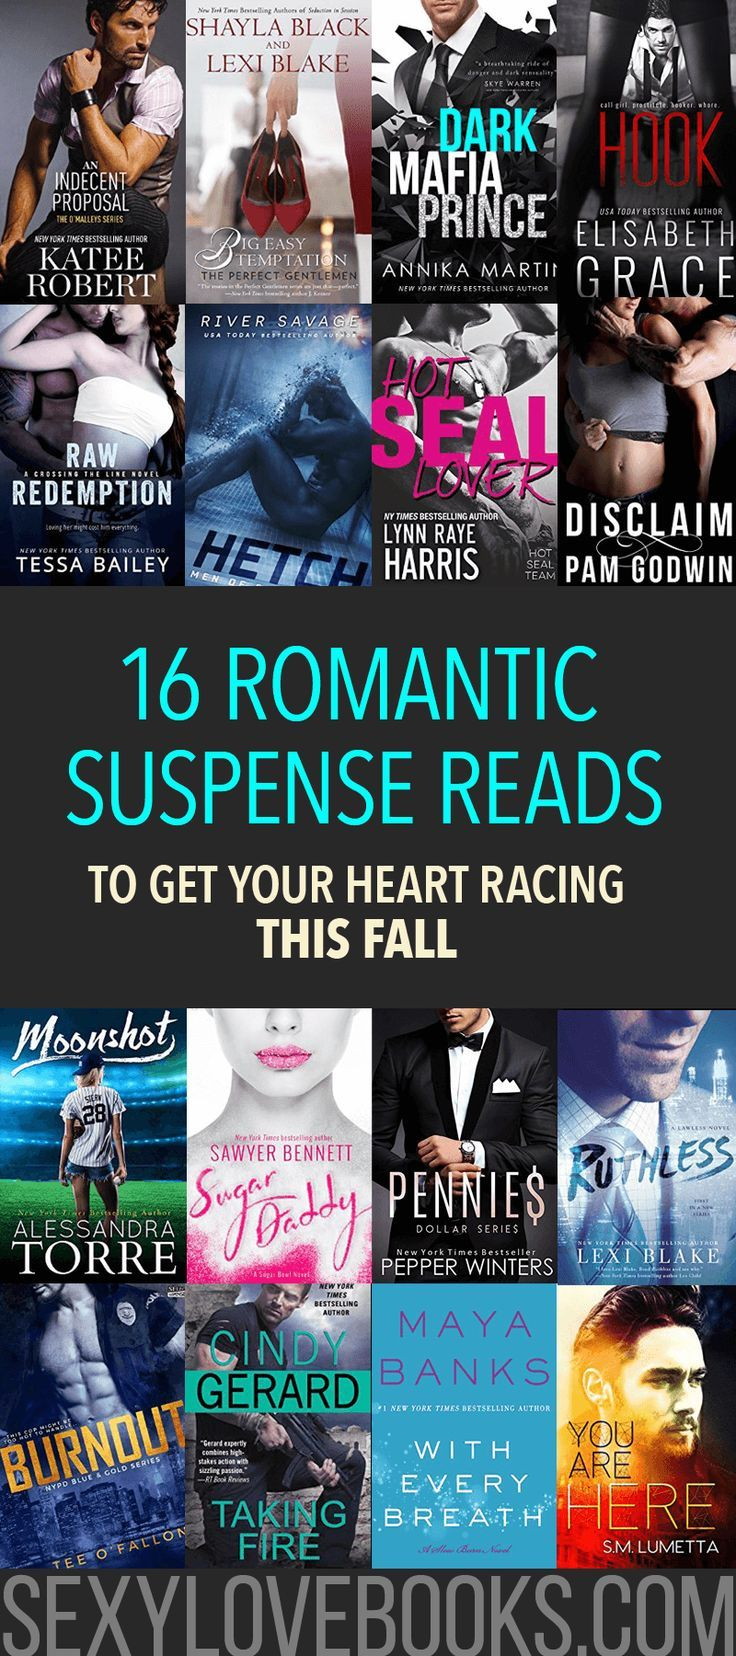 16 Romantic Suspense Reads to Get Your Heart Racing This Fall     Bad boys, big guns, hot sex and Happily Ever Afters ❤ Get more sexy reading ideas + tips at www.sexylovebooks.com